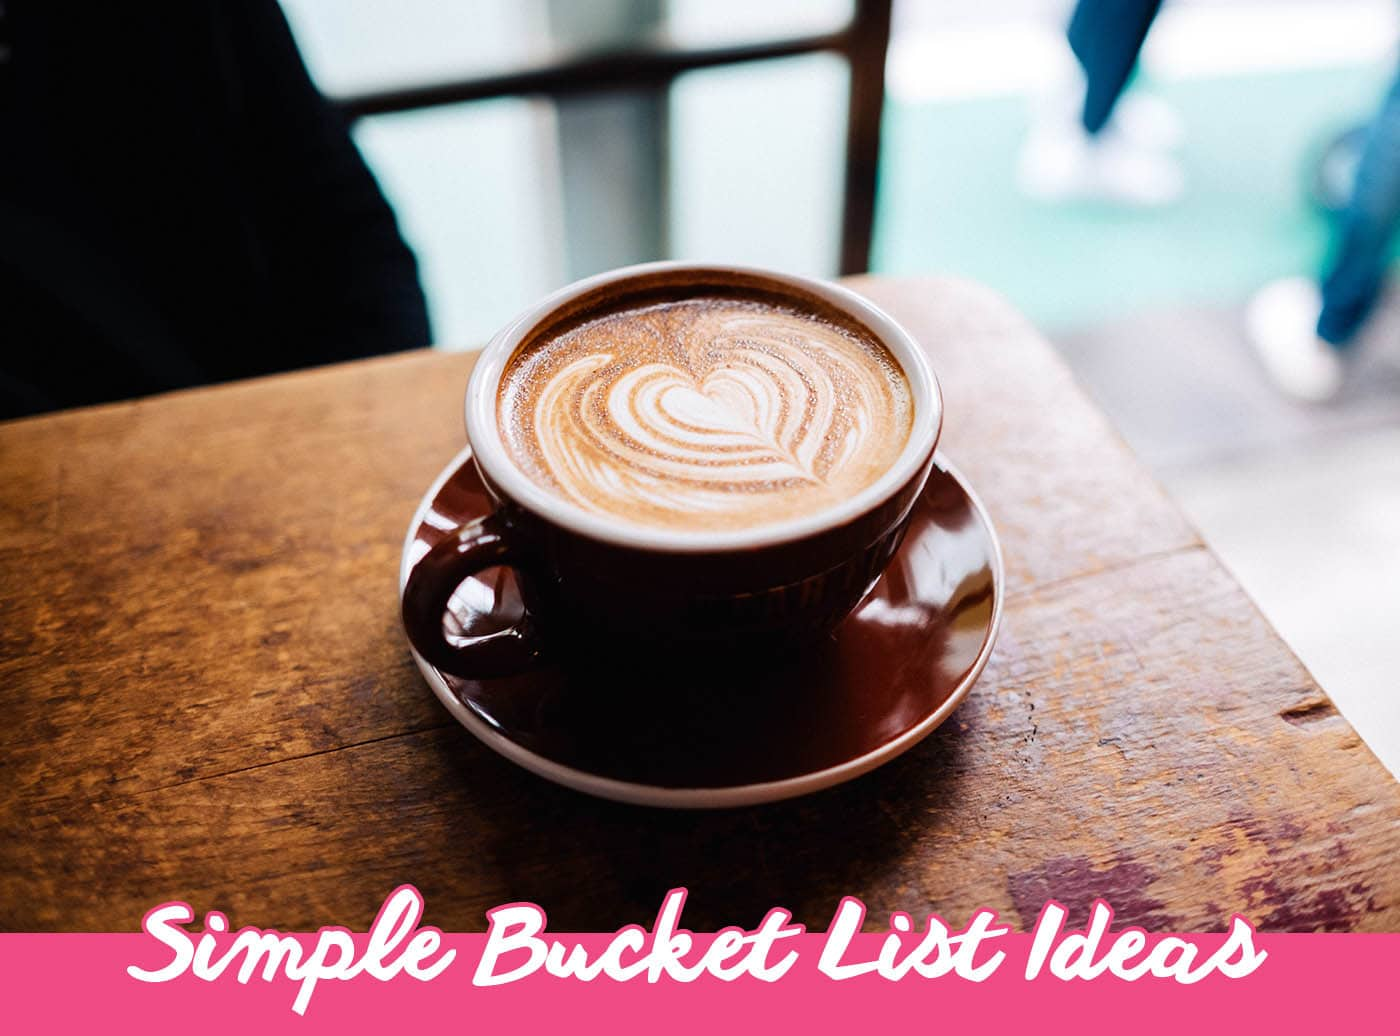 Simple Bucket List Ideas for things to do right now. | Bucket List Inspiration & Ideas